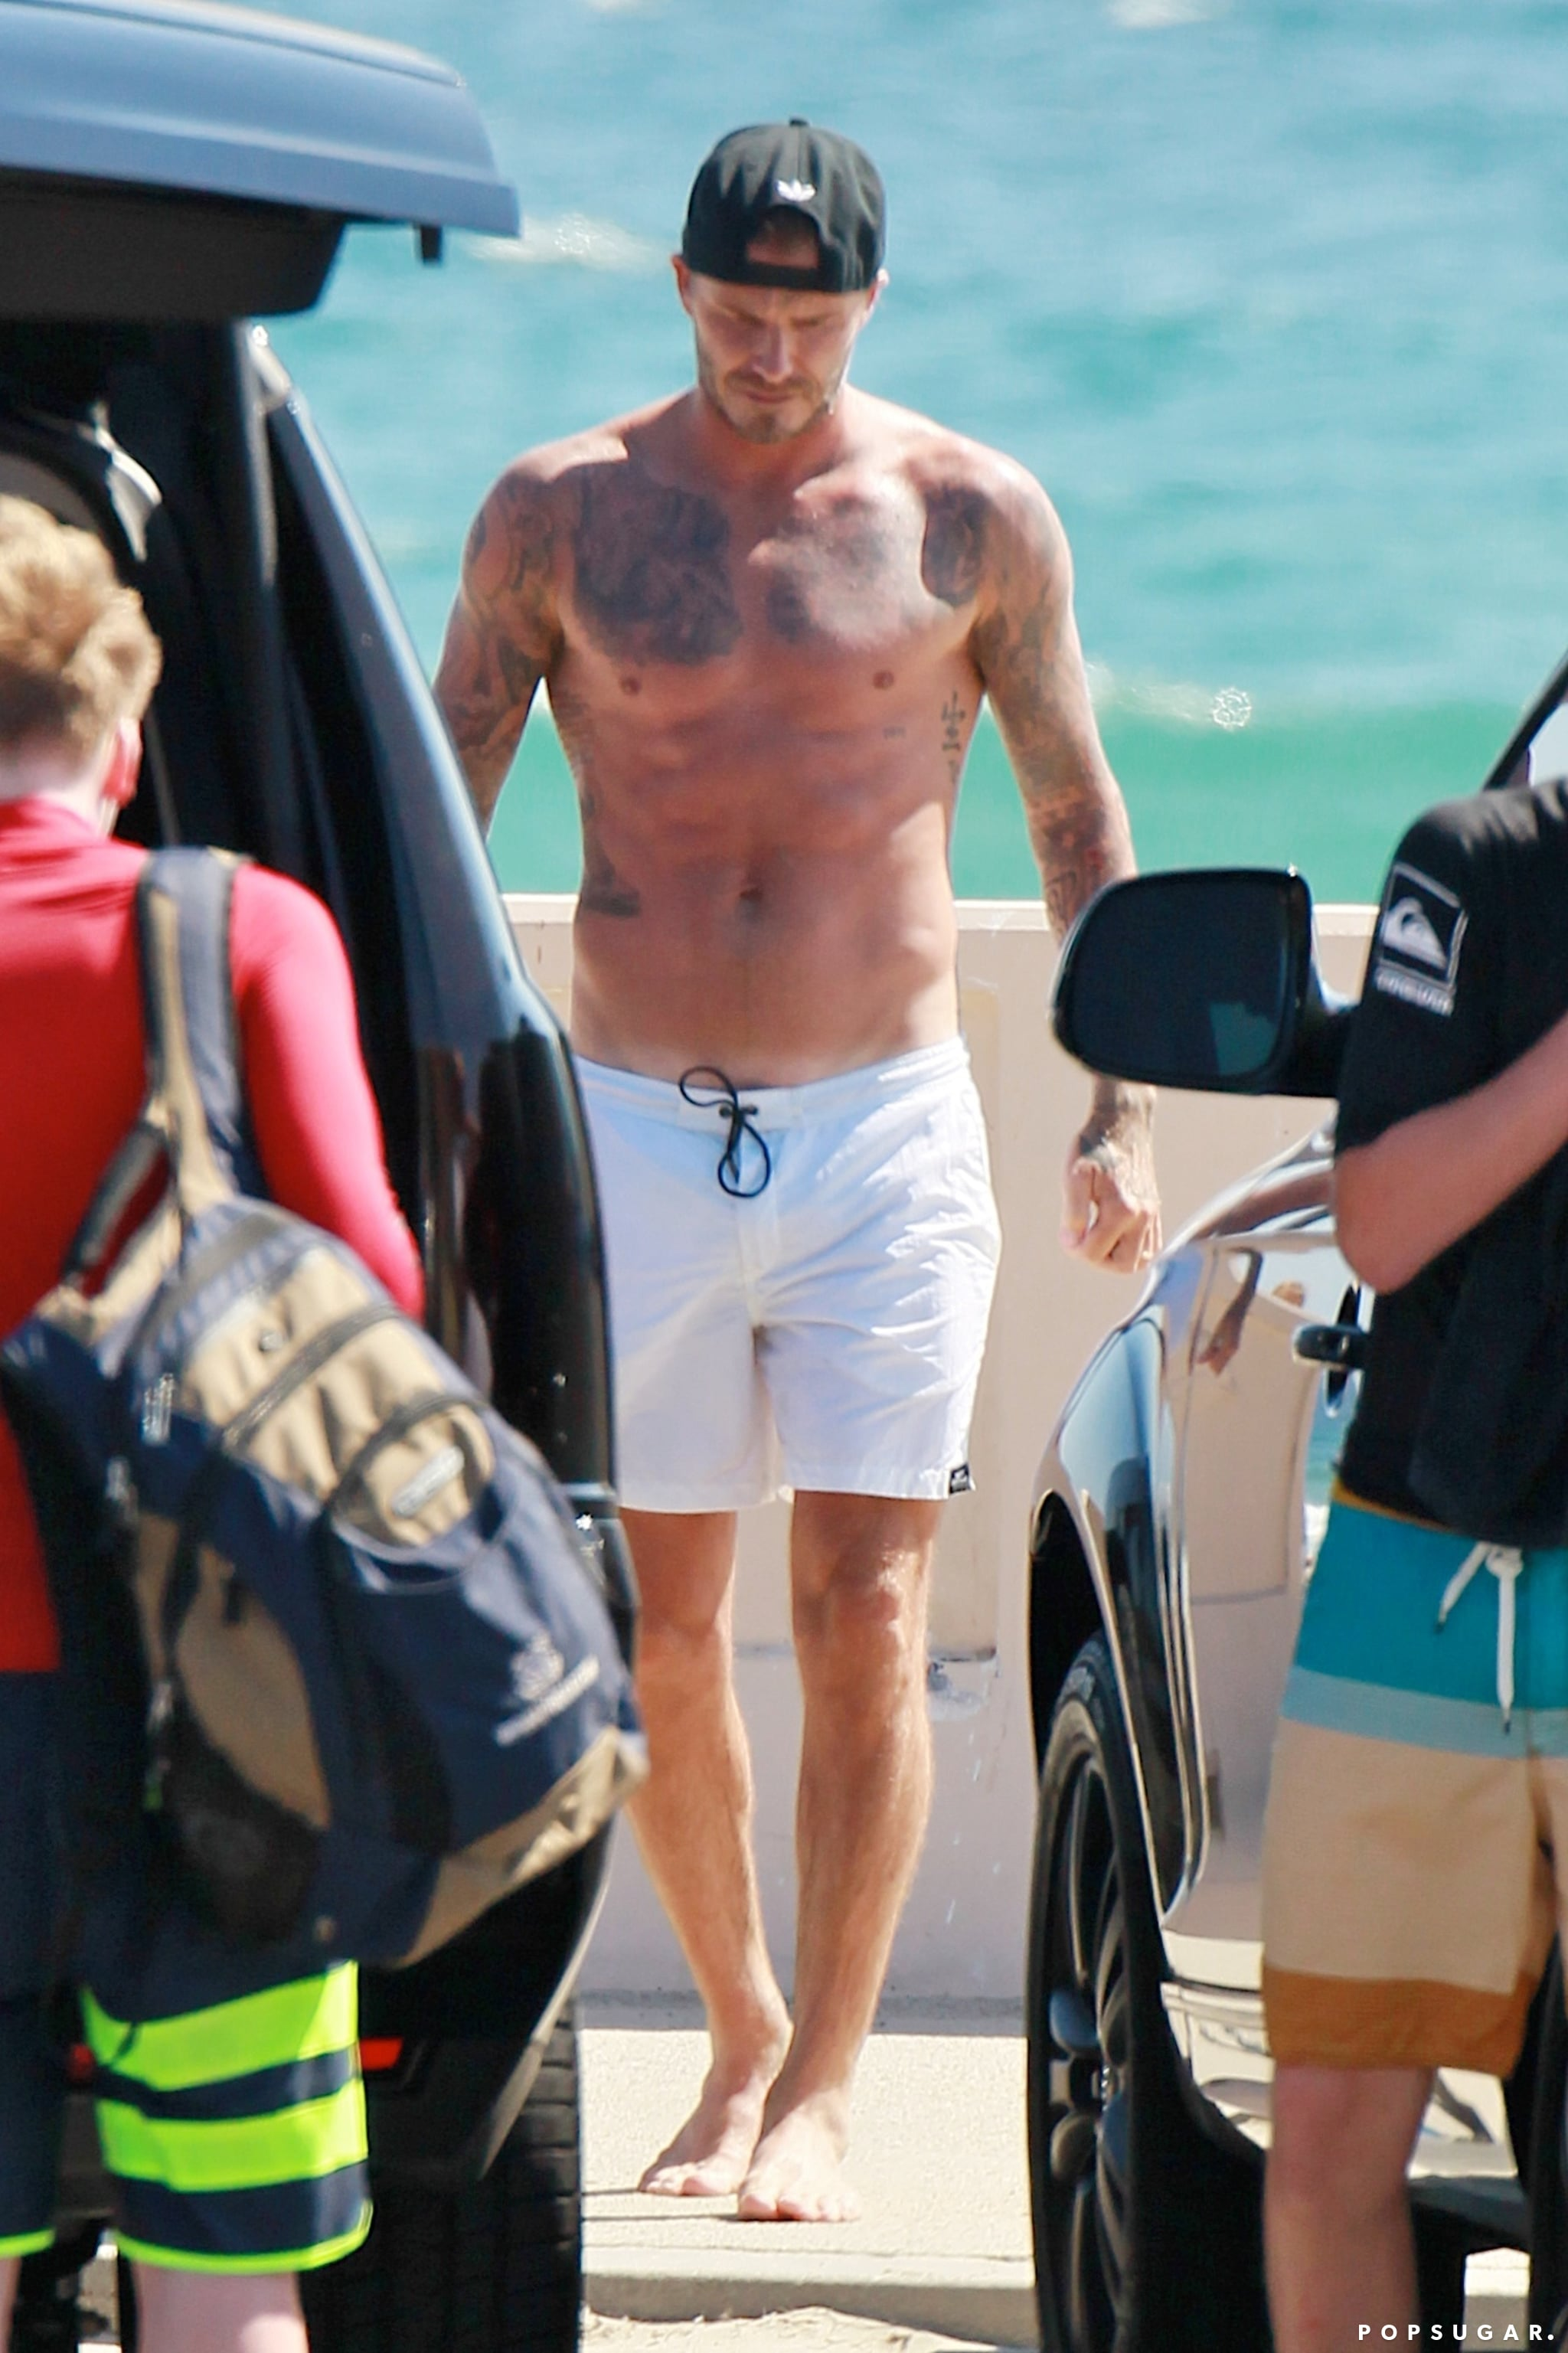 Earlier in the day, David hit the beach with his family.